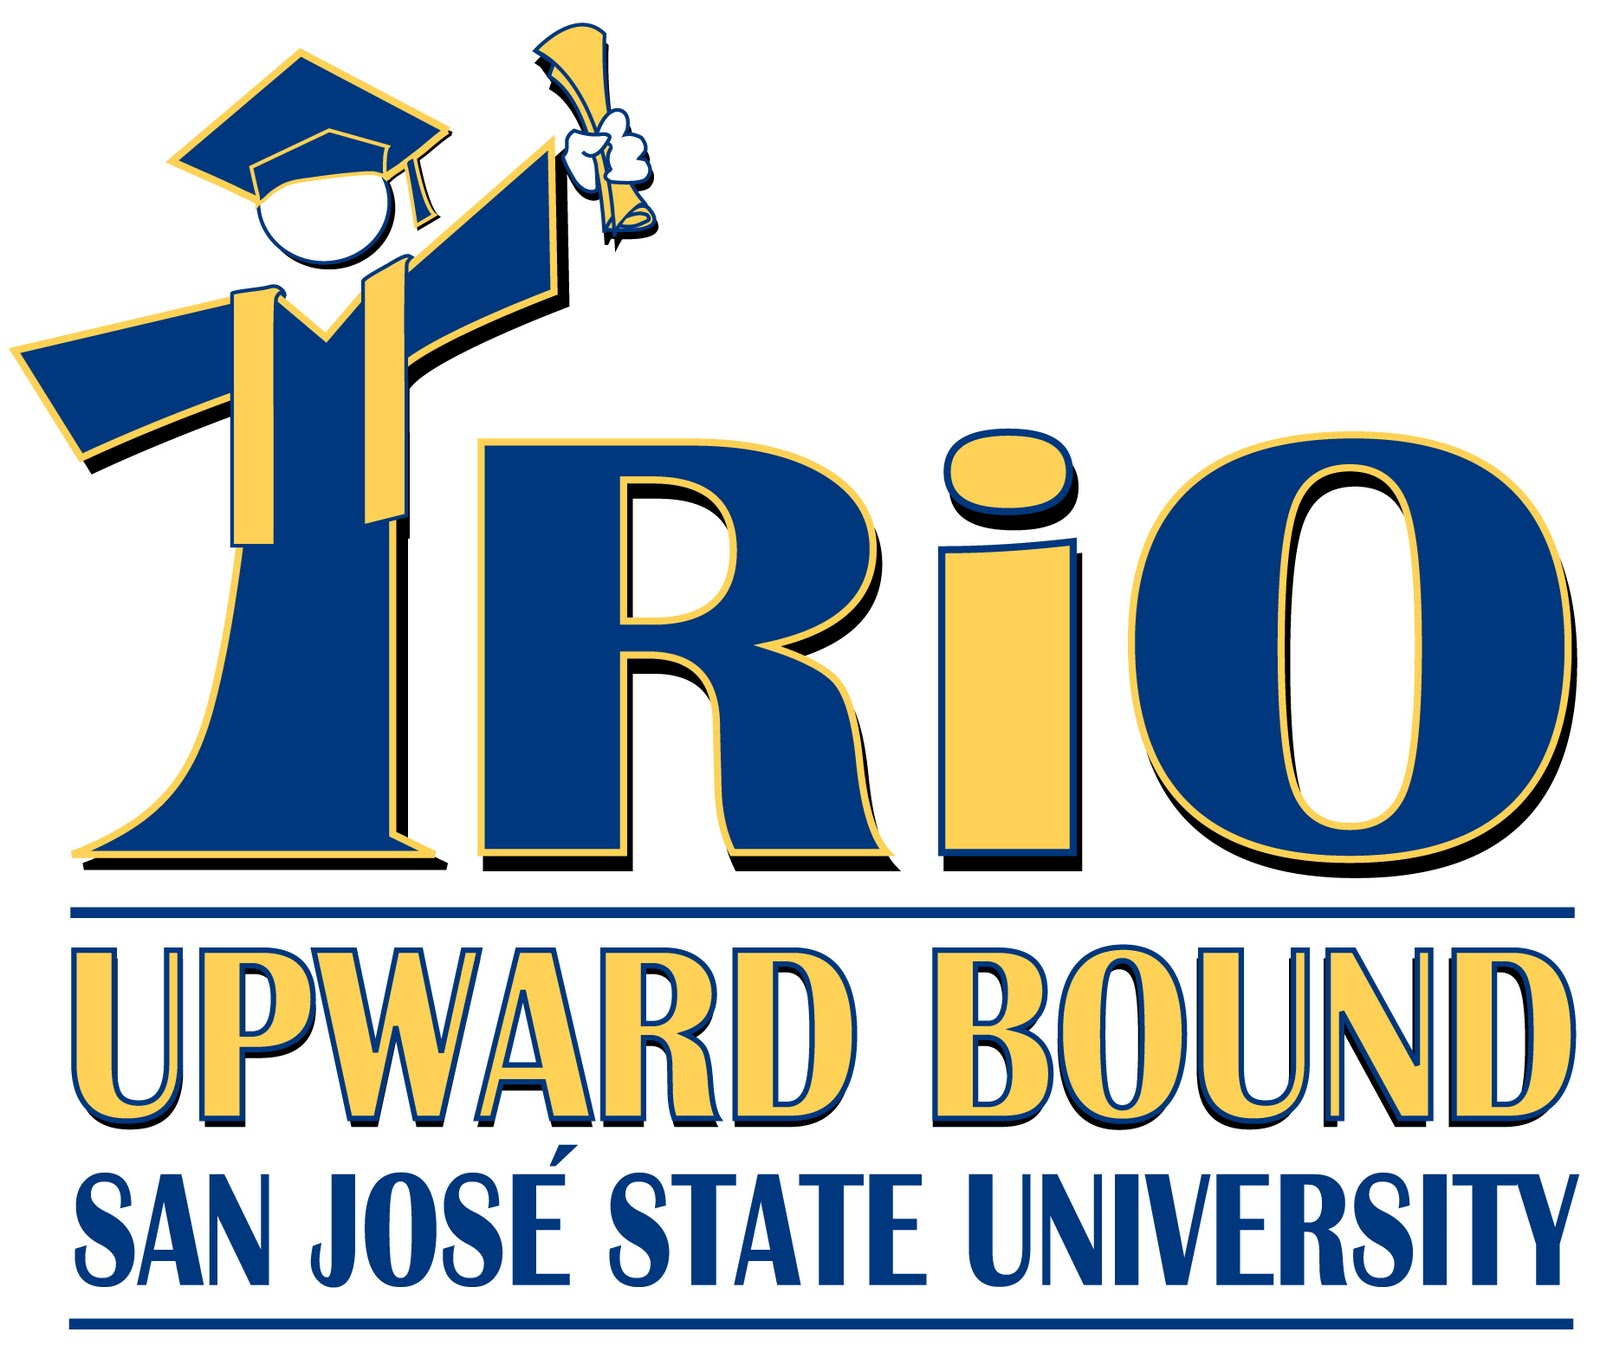 upward bound essays